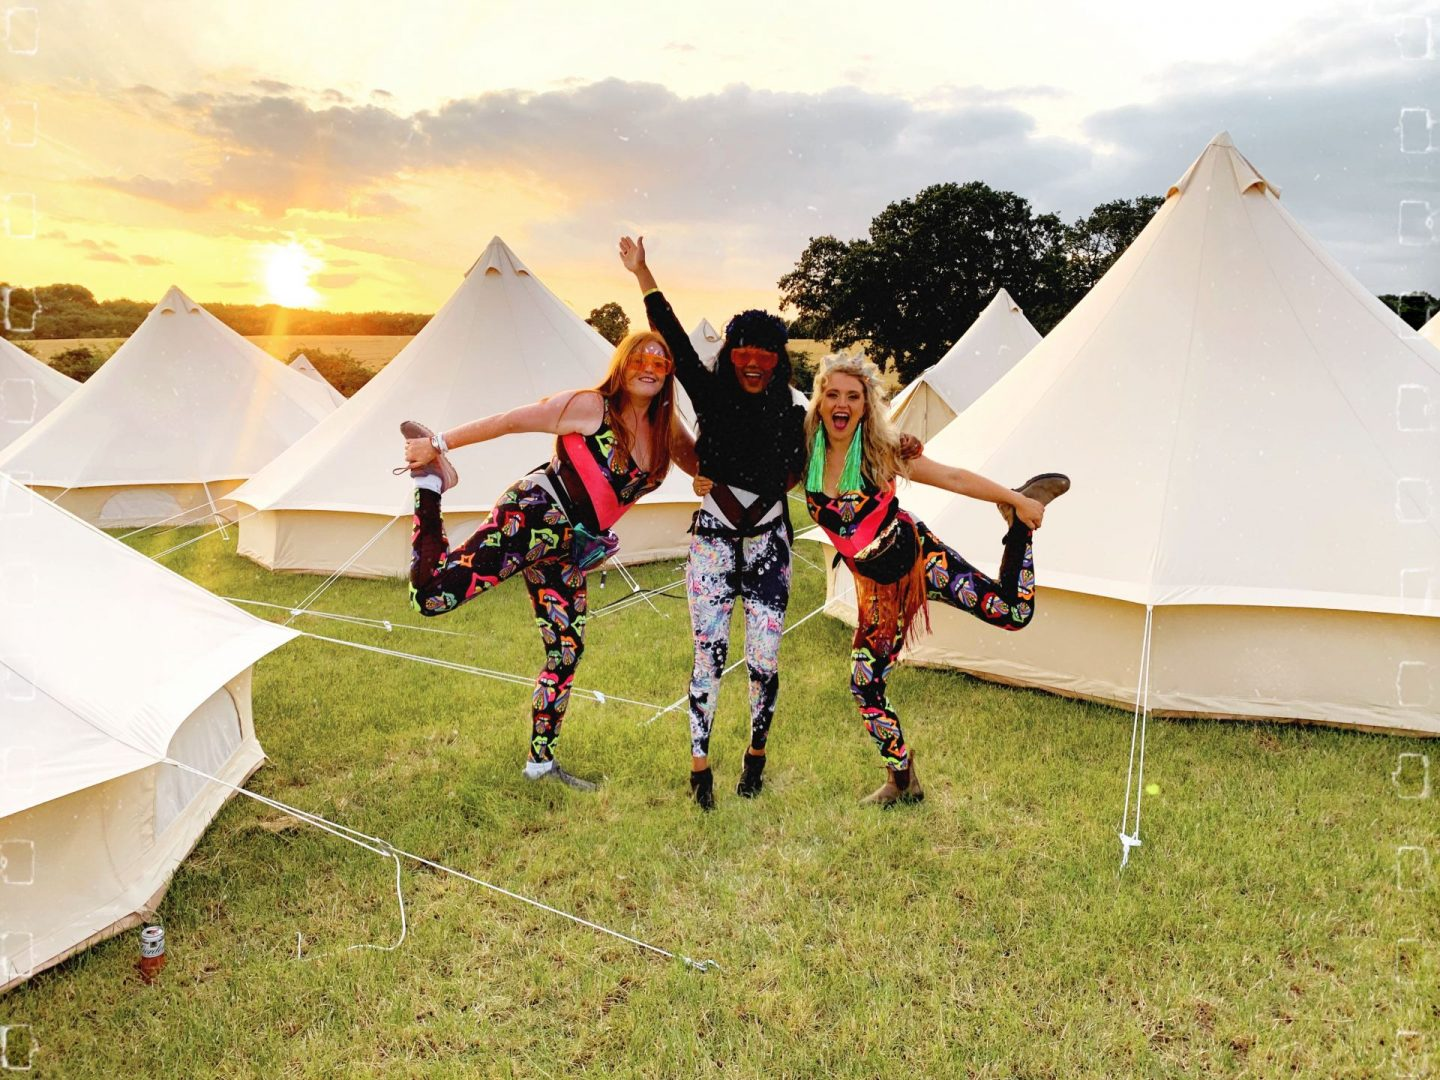 Camping in boutique at Noisily Review